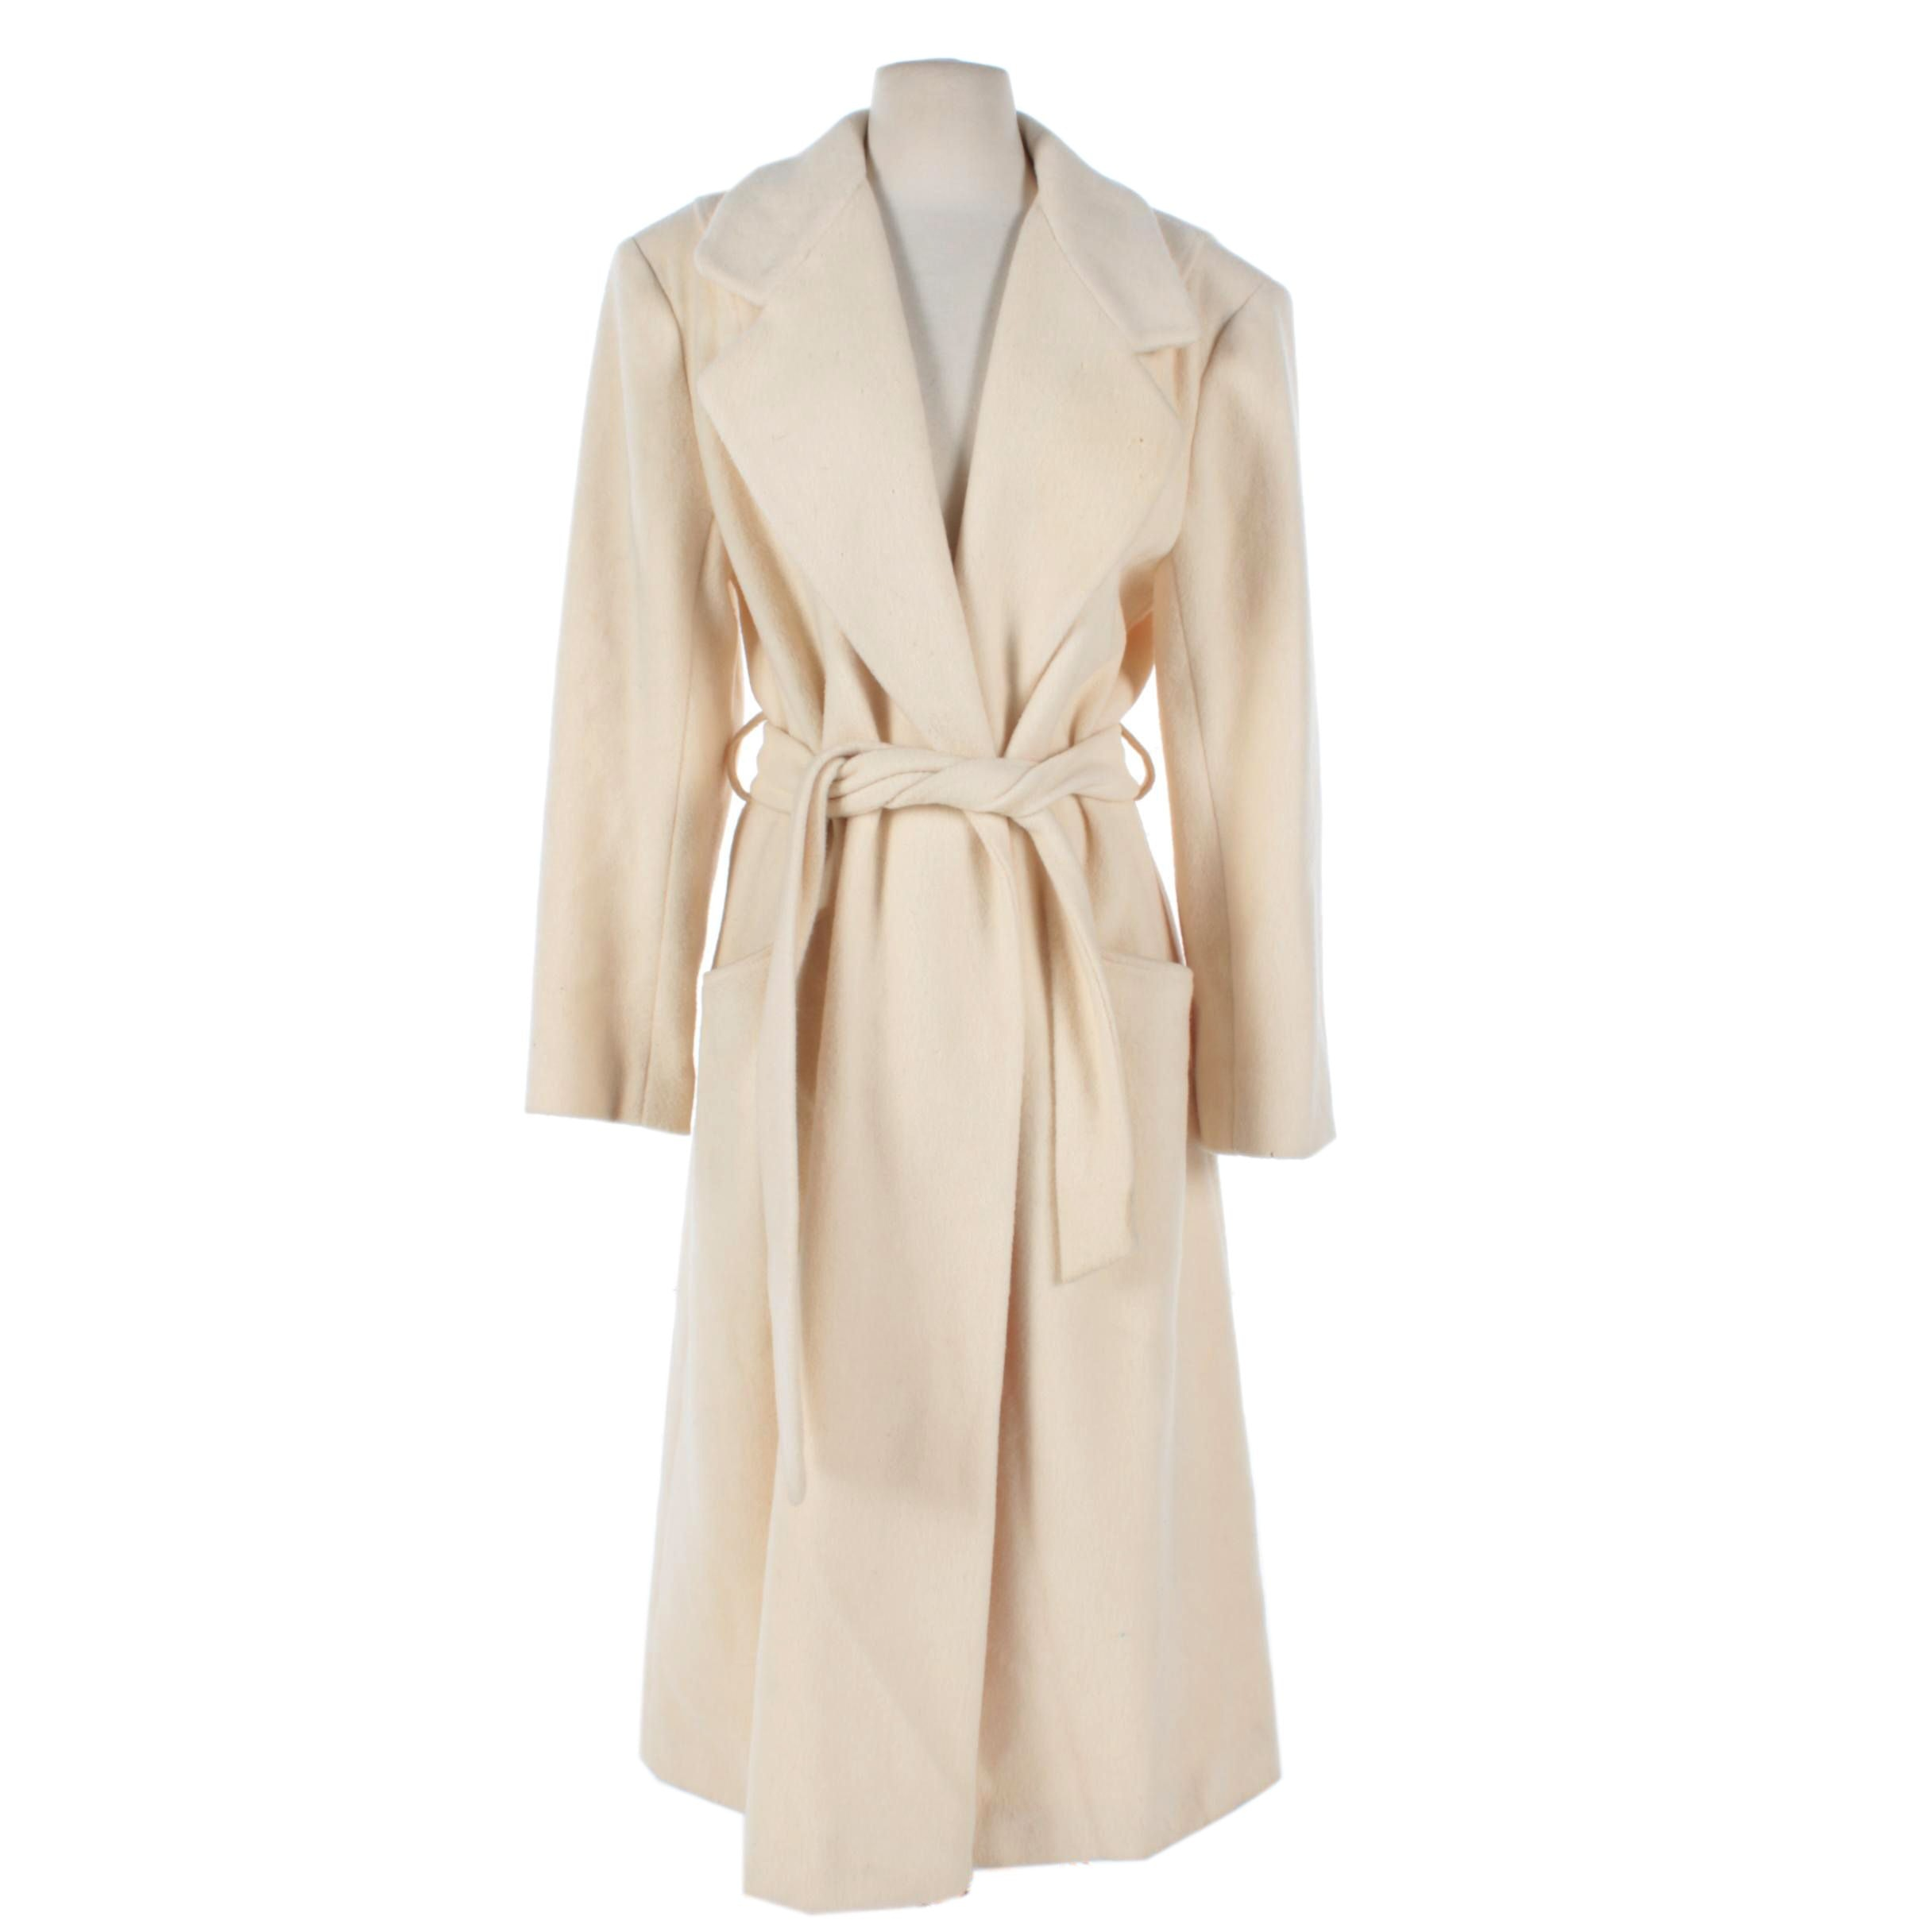 Women's Vintage Youthcraft Wool Blend Coat